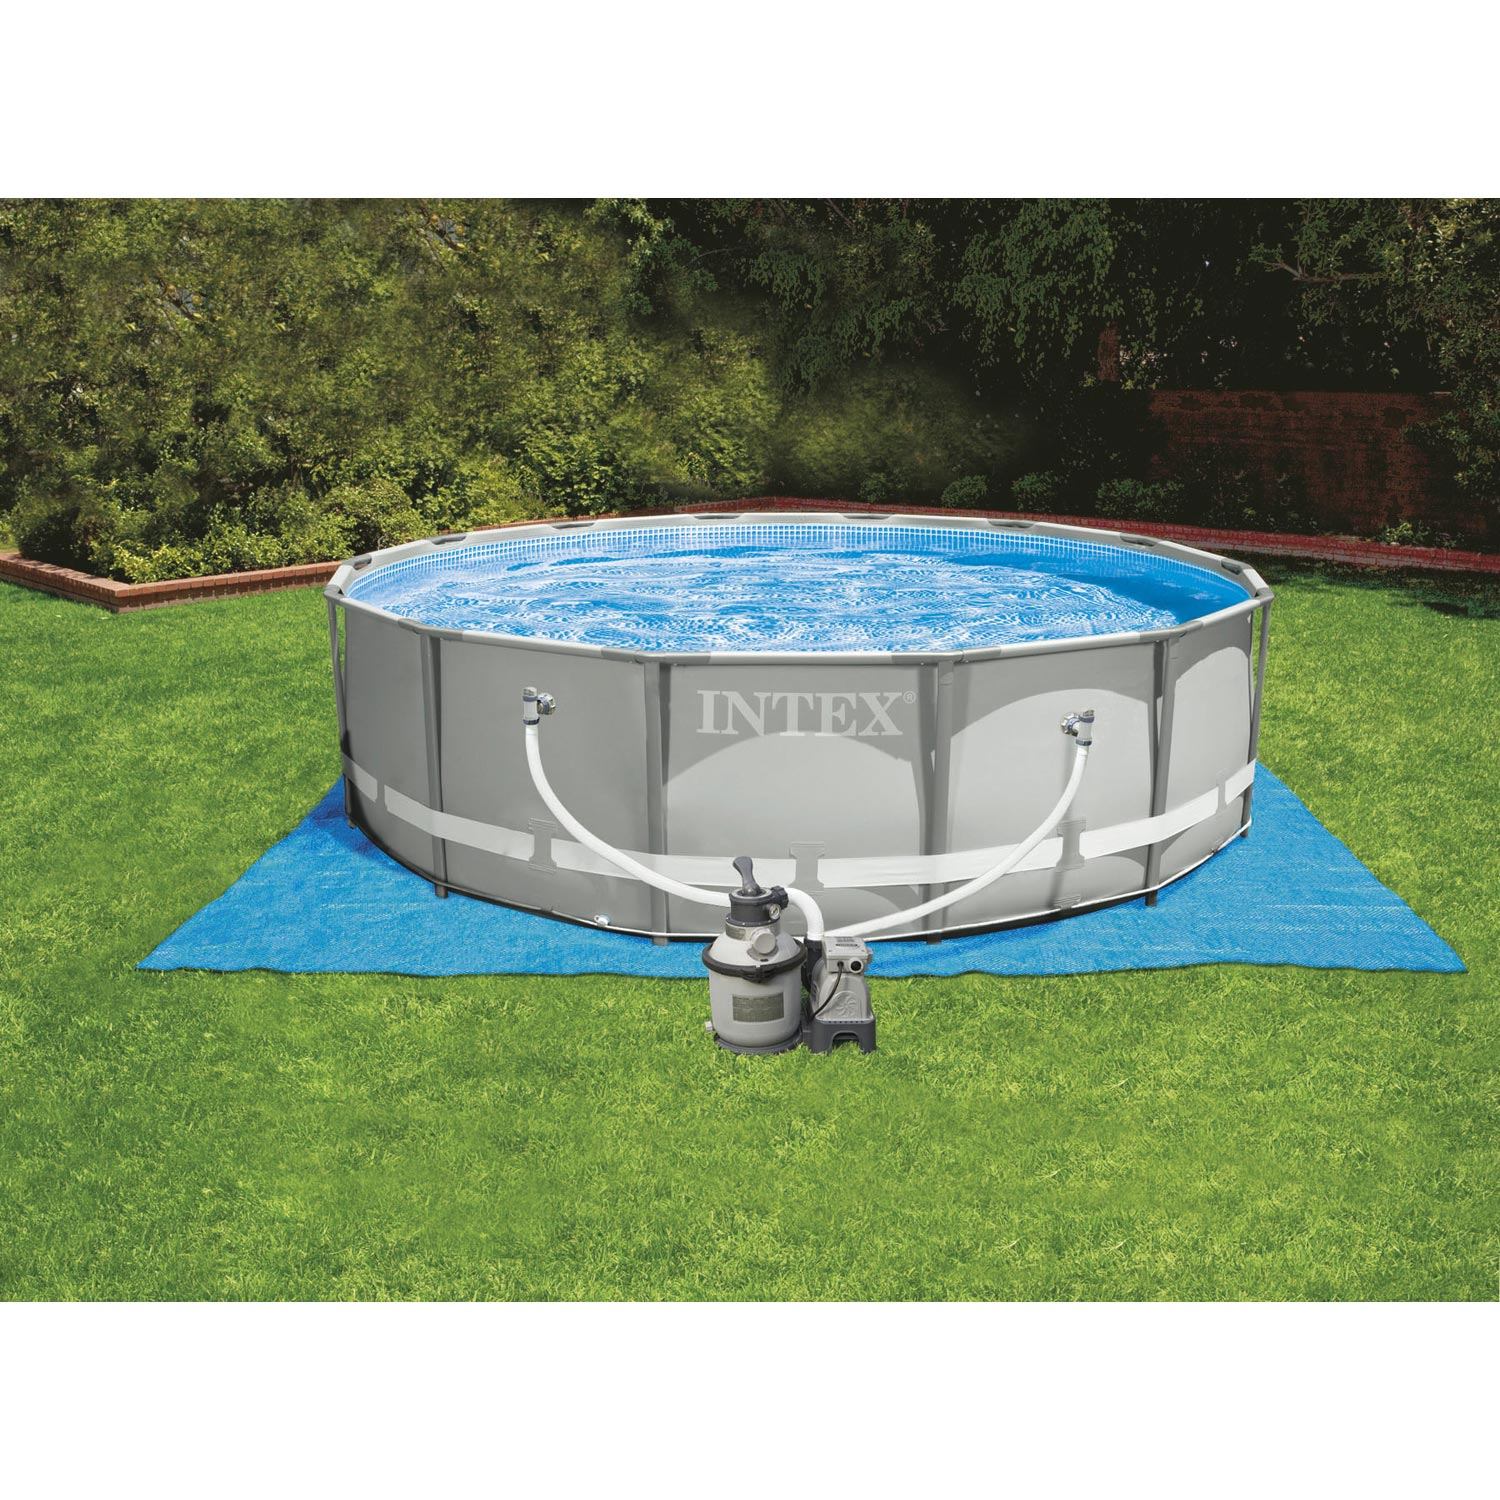 Piscine hors sol autoportante tubulaire ultra frame intex for Piscine hors sol orleans